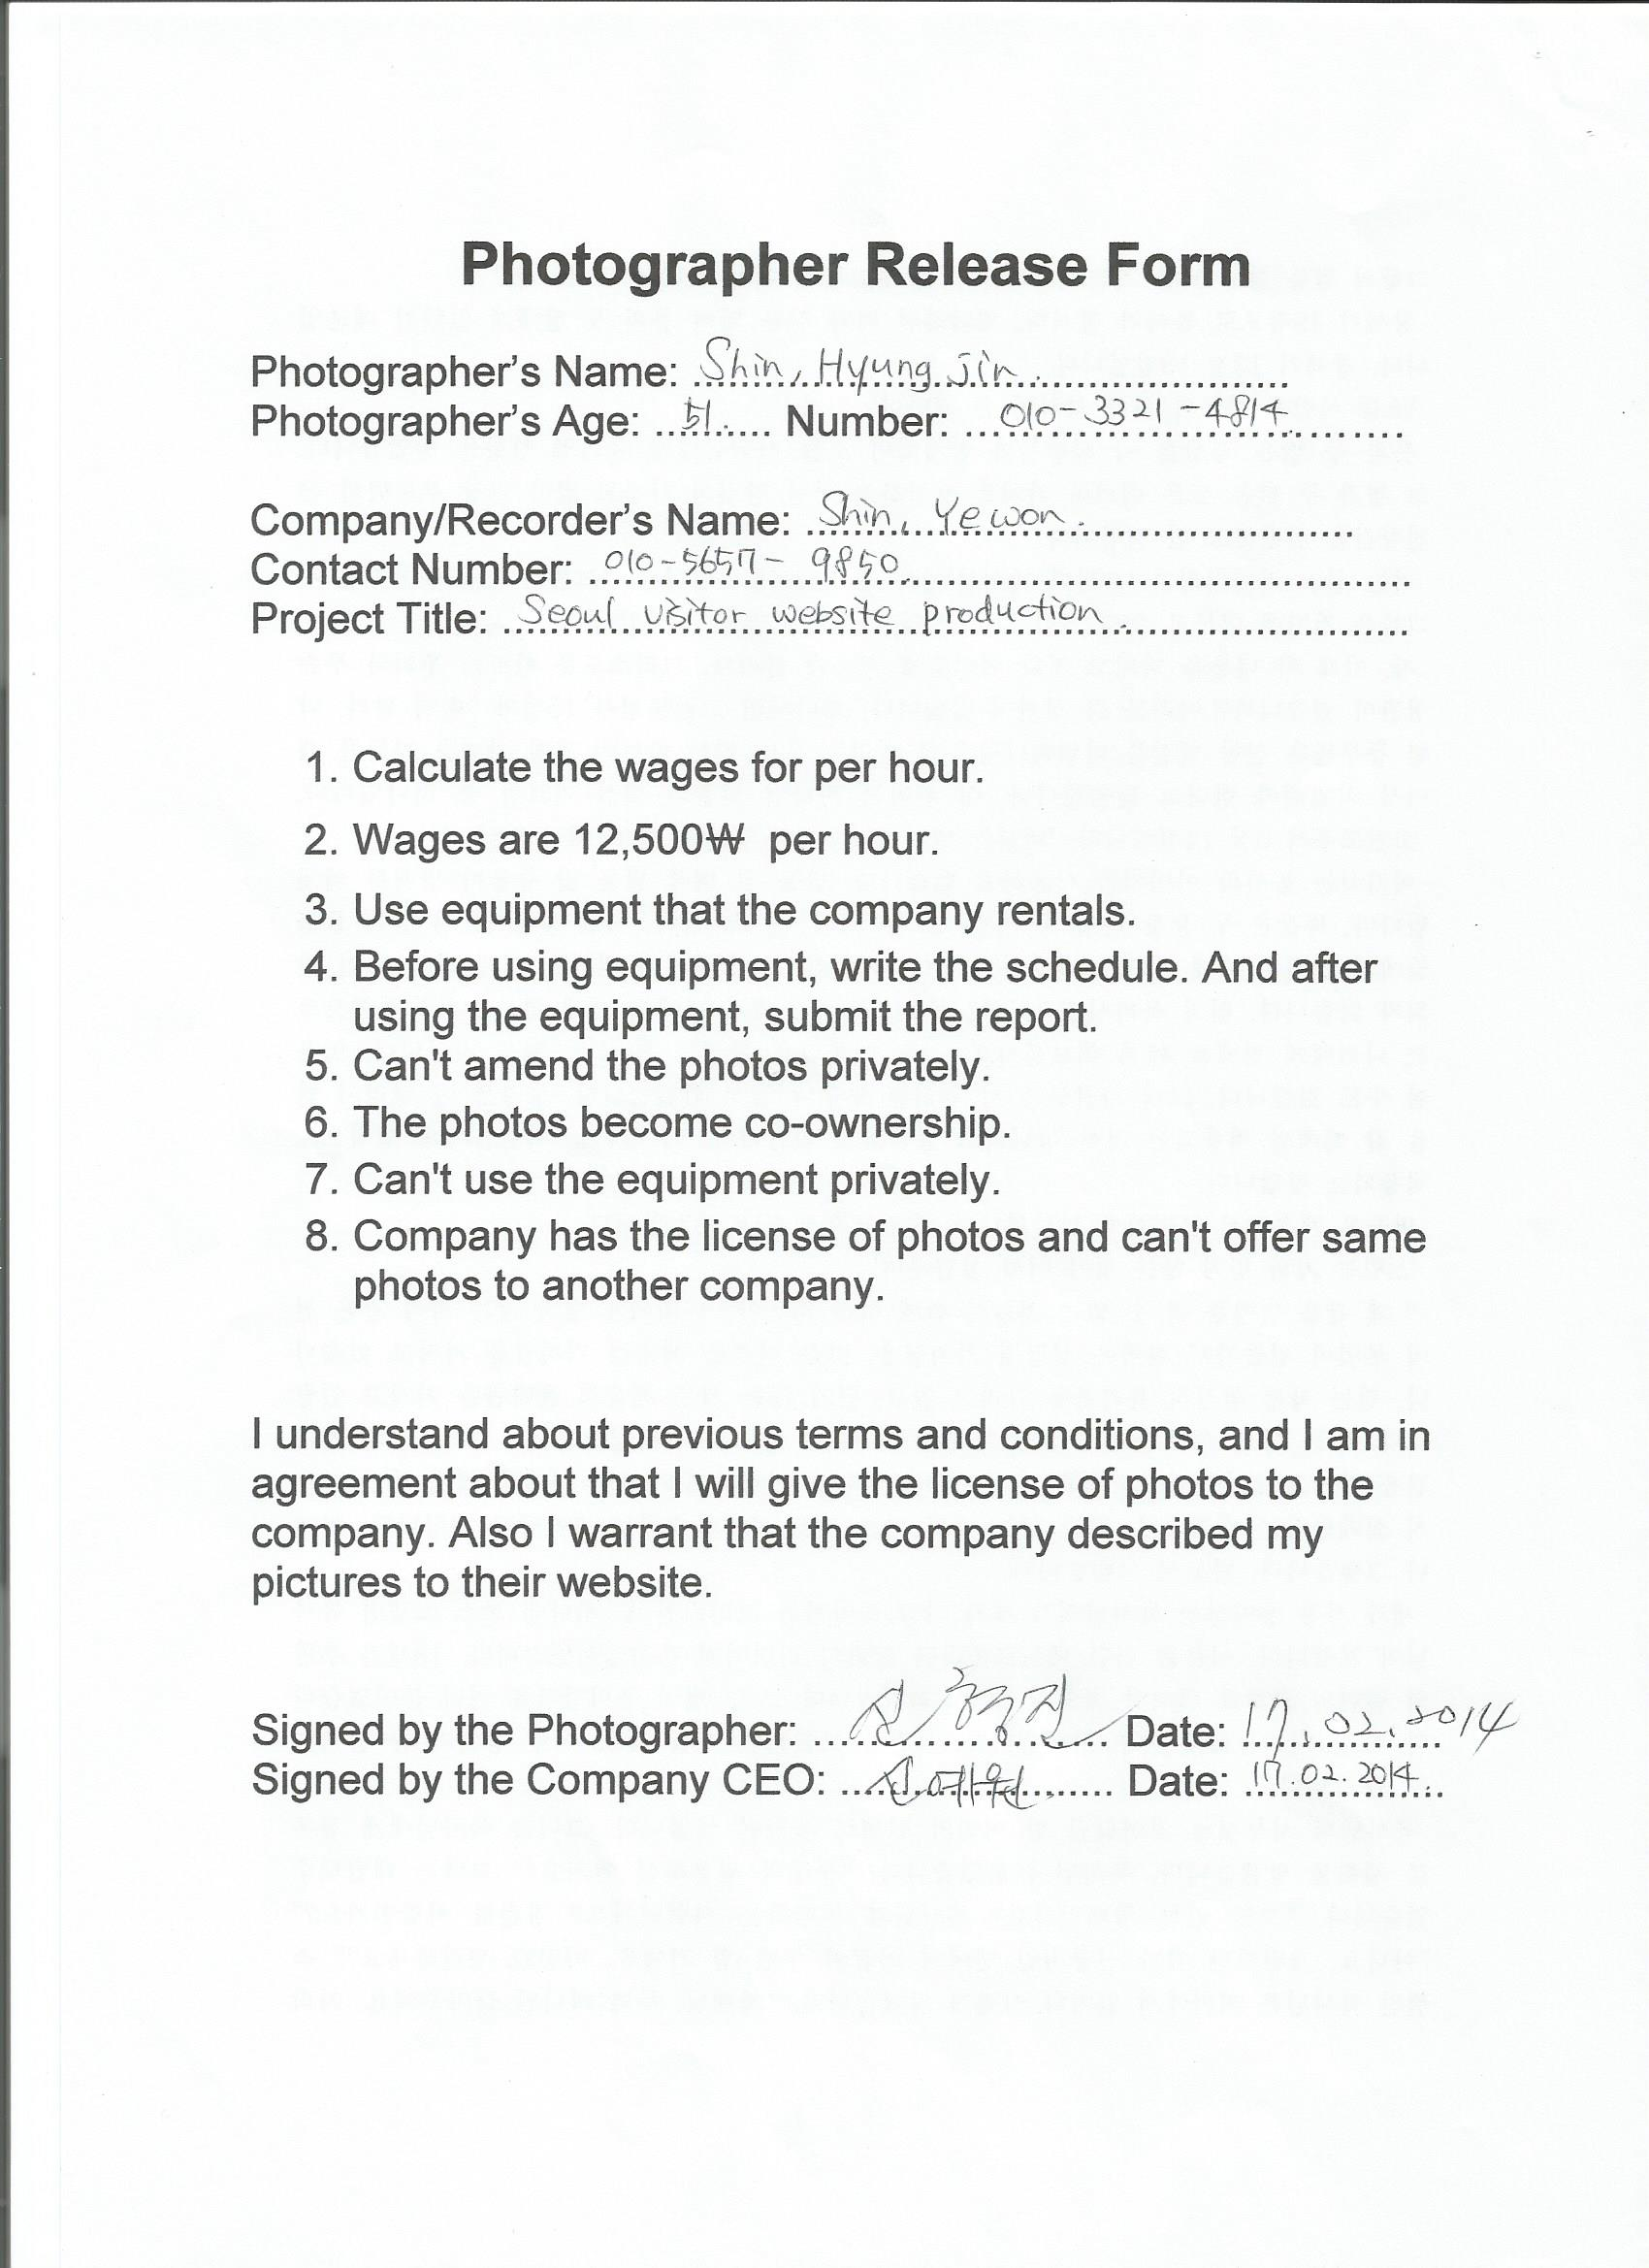 Famous photography release form template contemporary entry artist release forms beatrice shin falaconquin